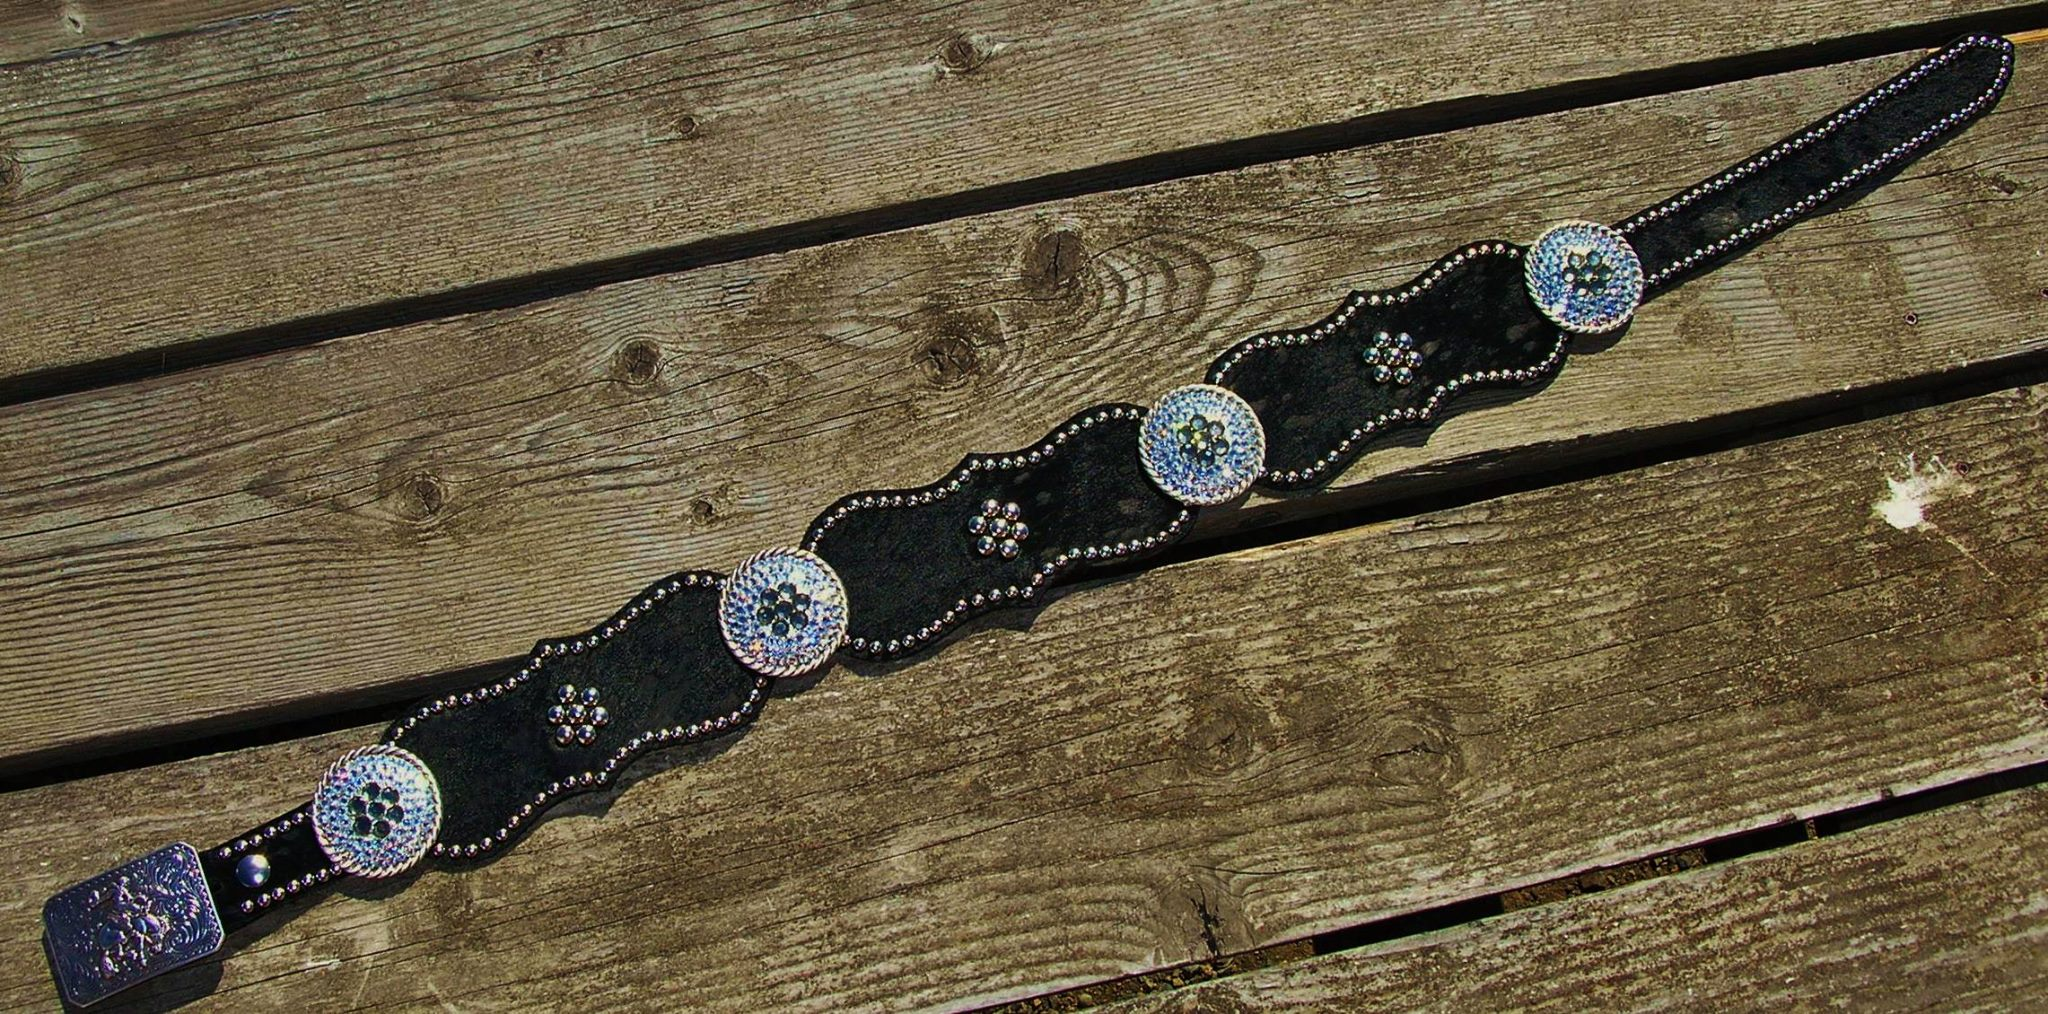 This is the belt that was donated to the Spirit Therapeutic Riding Program fundraiser Saturday night! The value is $350.